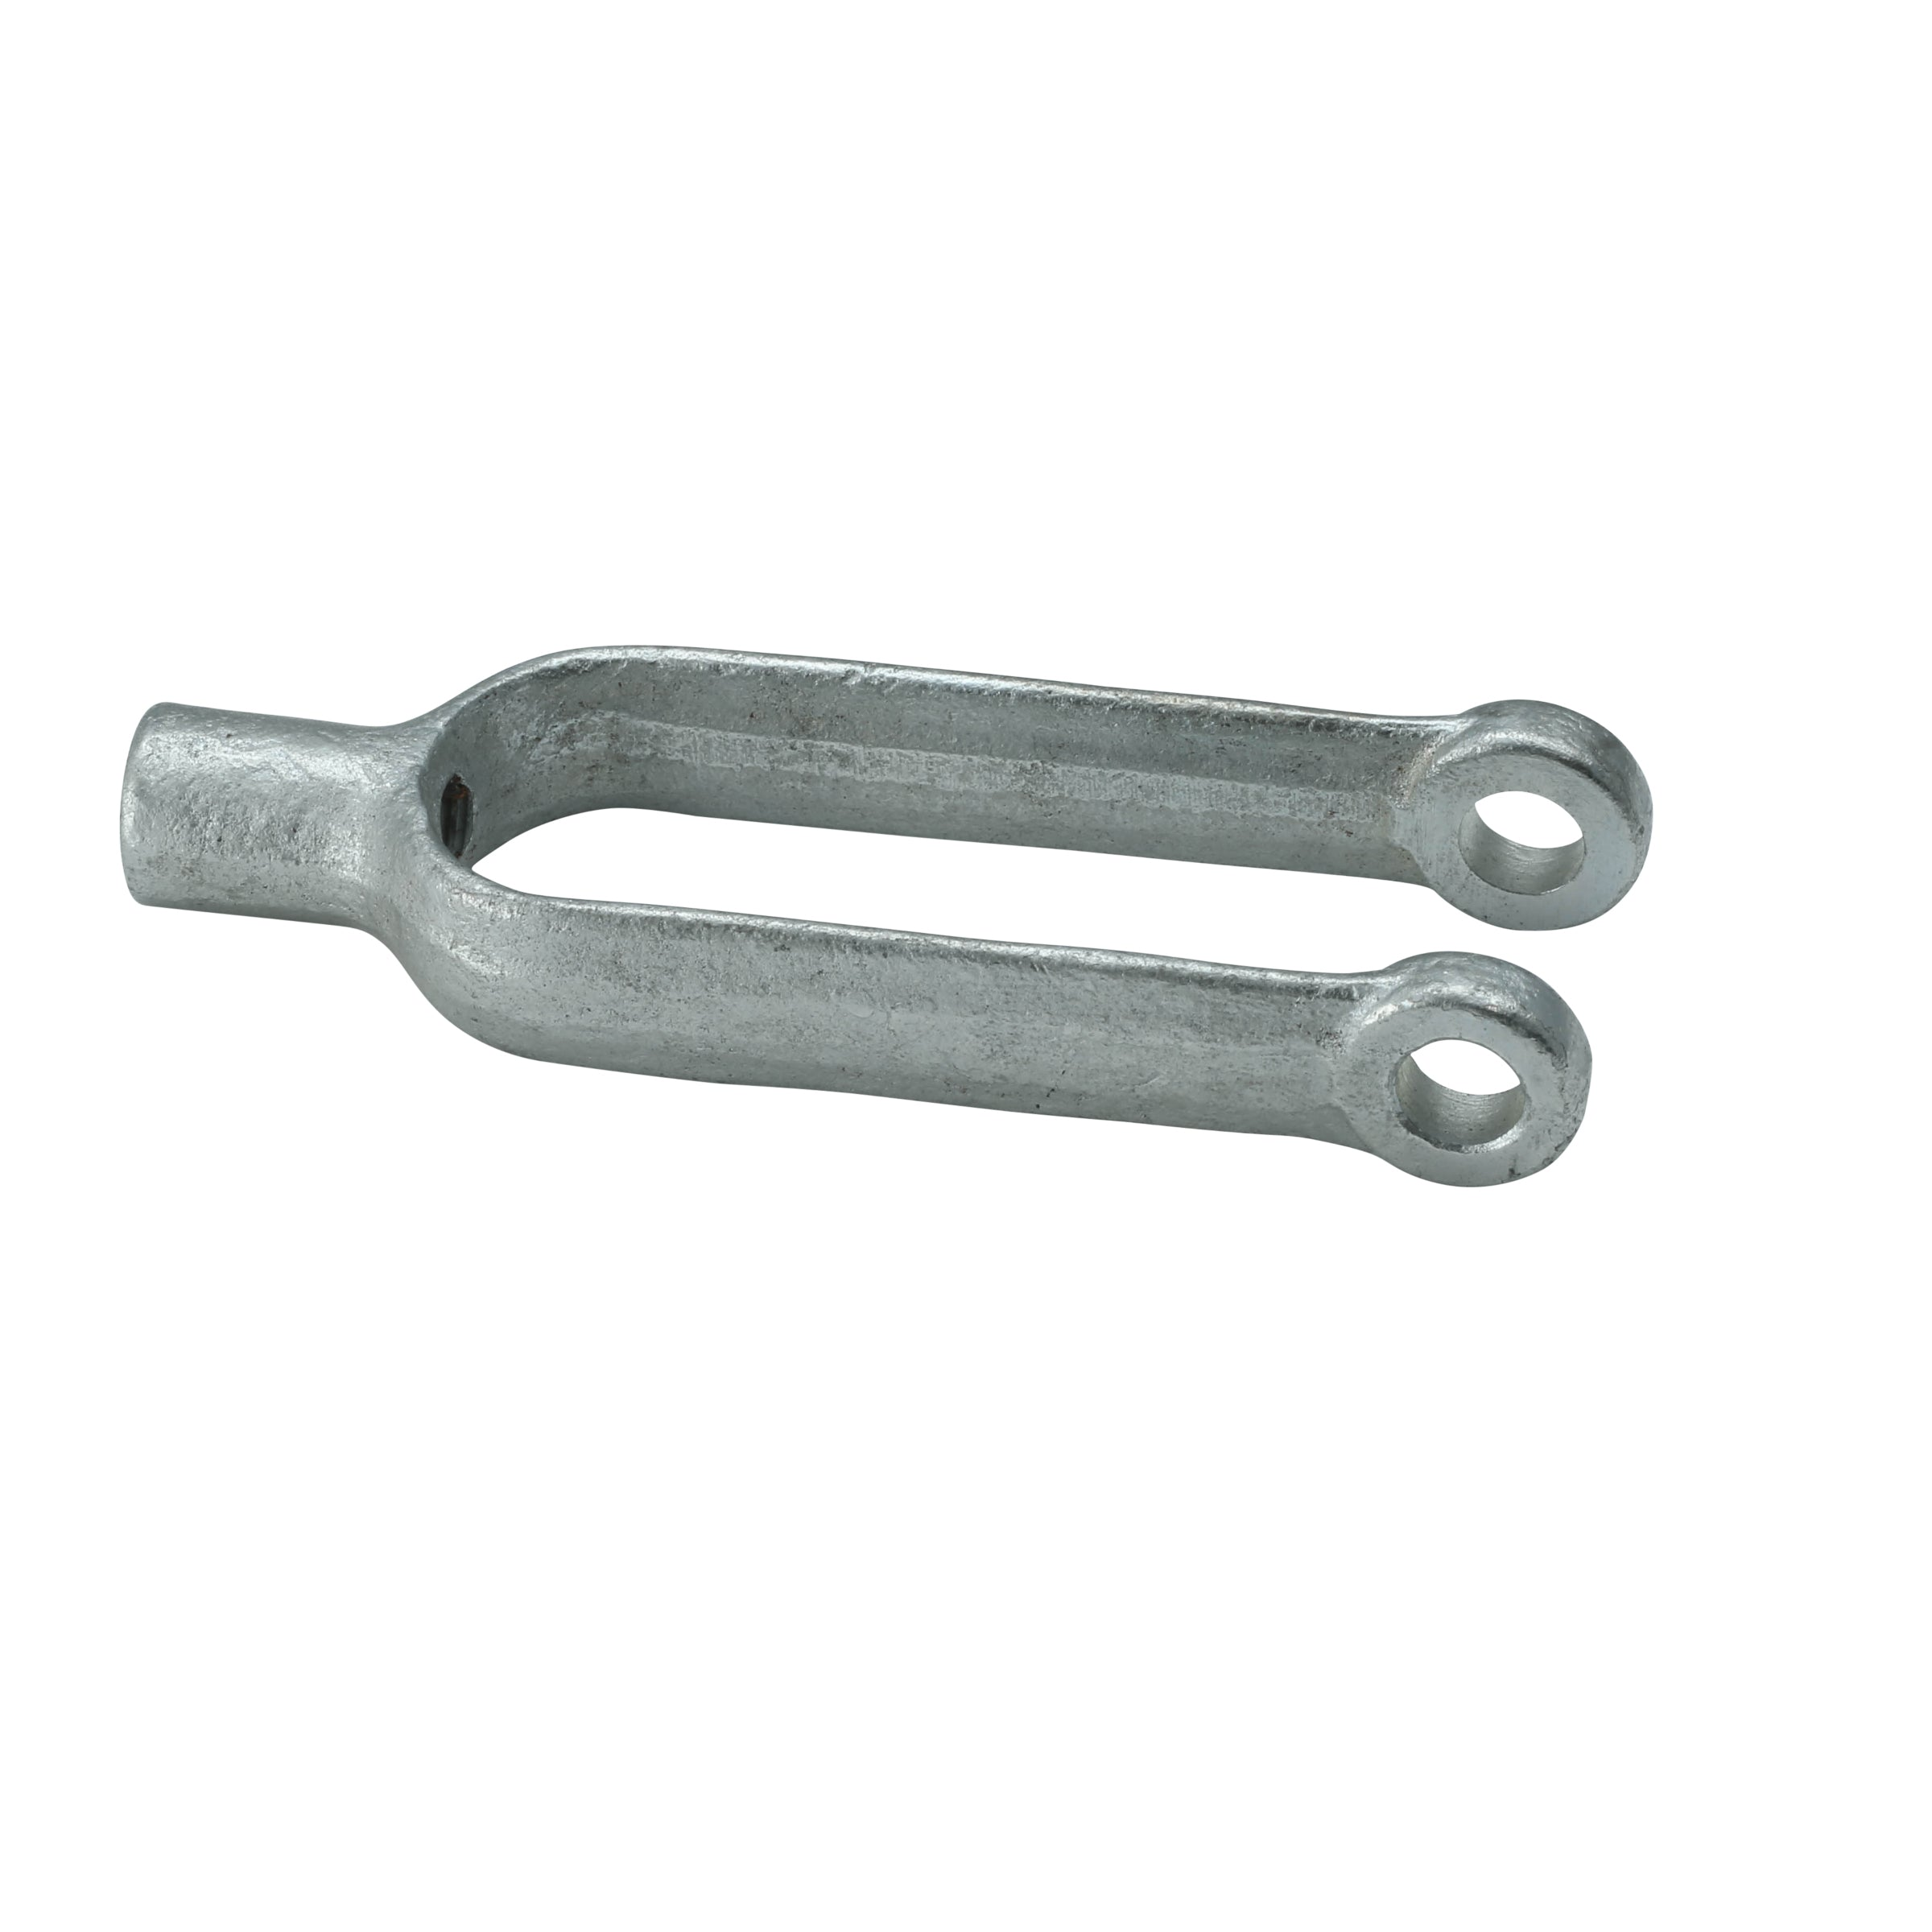 Brake Rod Adjustable Clevis • 1941-48